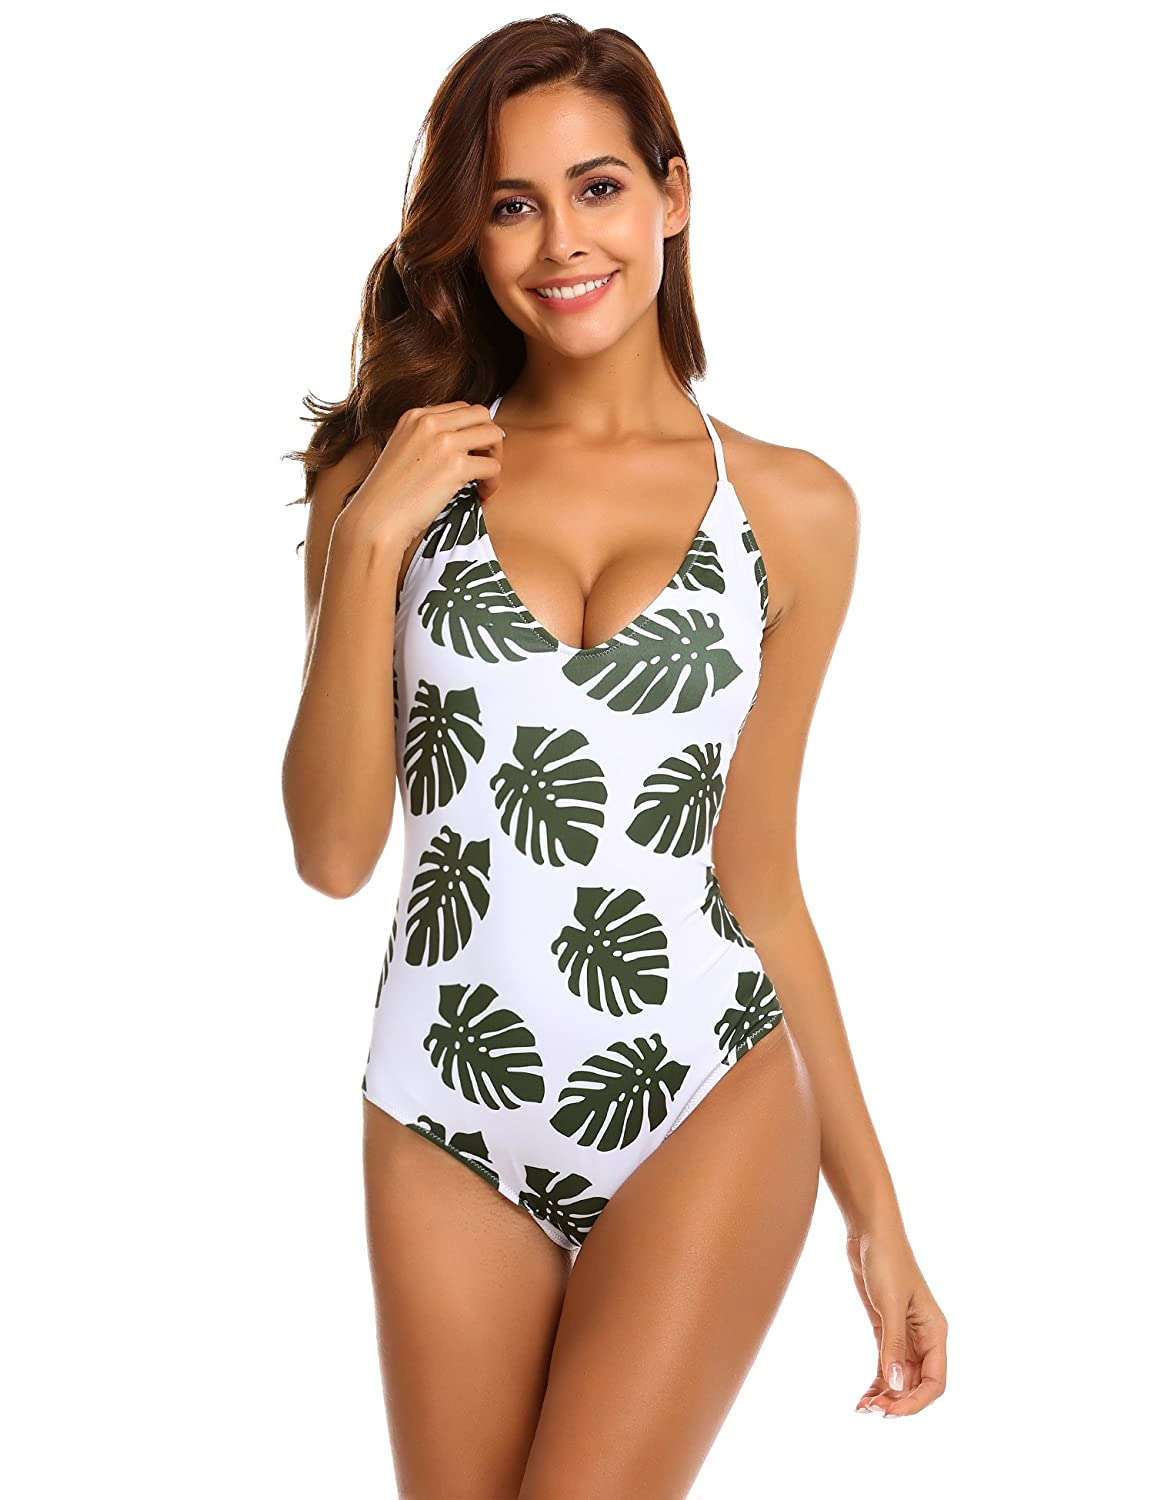 9cdc987219 Imported sexy monokini. With soft and removable padding. Adjustable cross  lace-up low back. Medium triangle top and medium bottom coverage